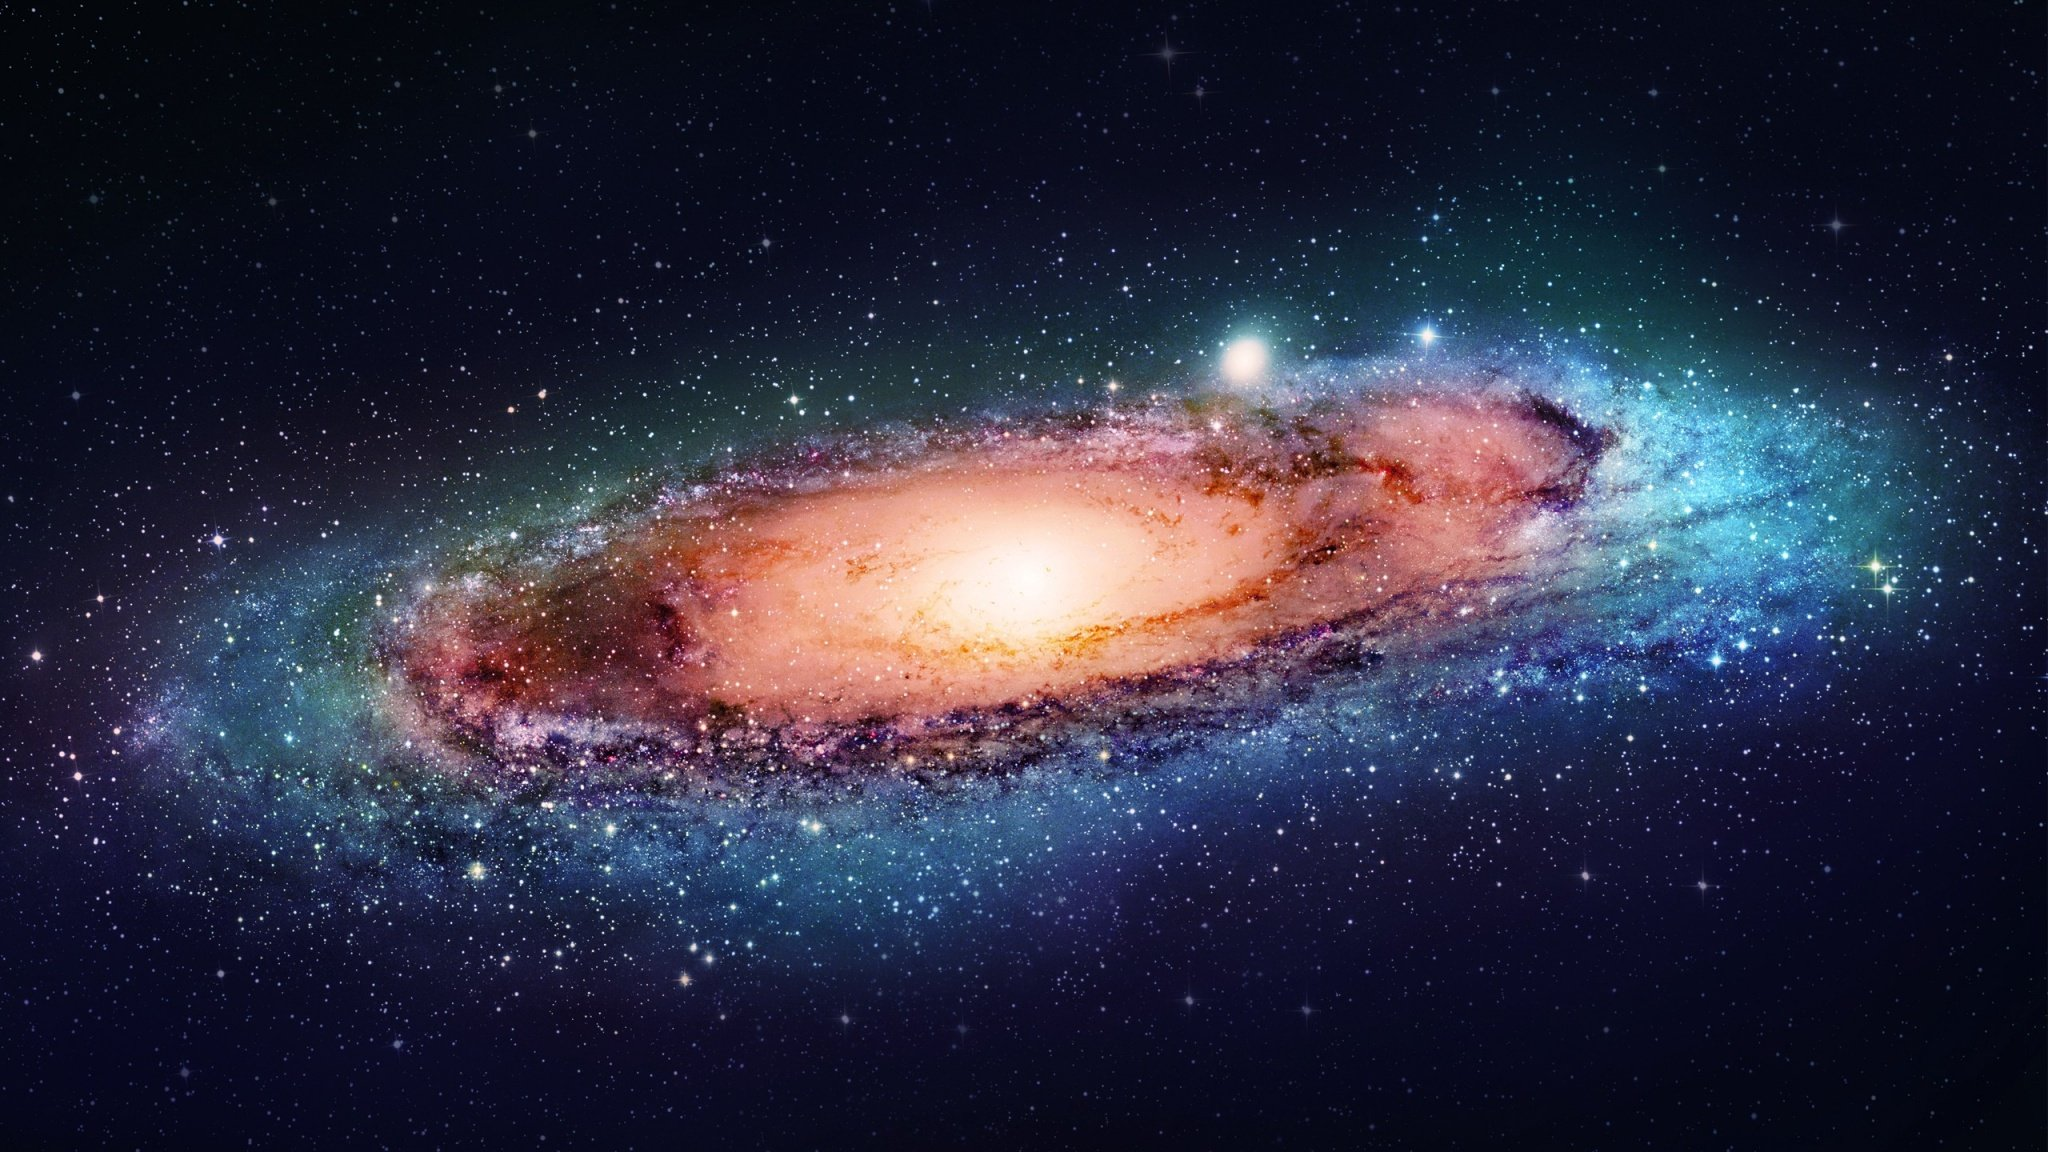 Andromeda Galaxy Space 2048 x 1152 Download Close 2048x1152